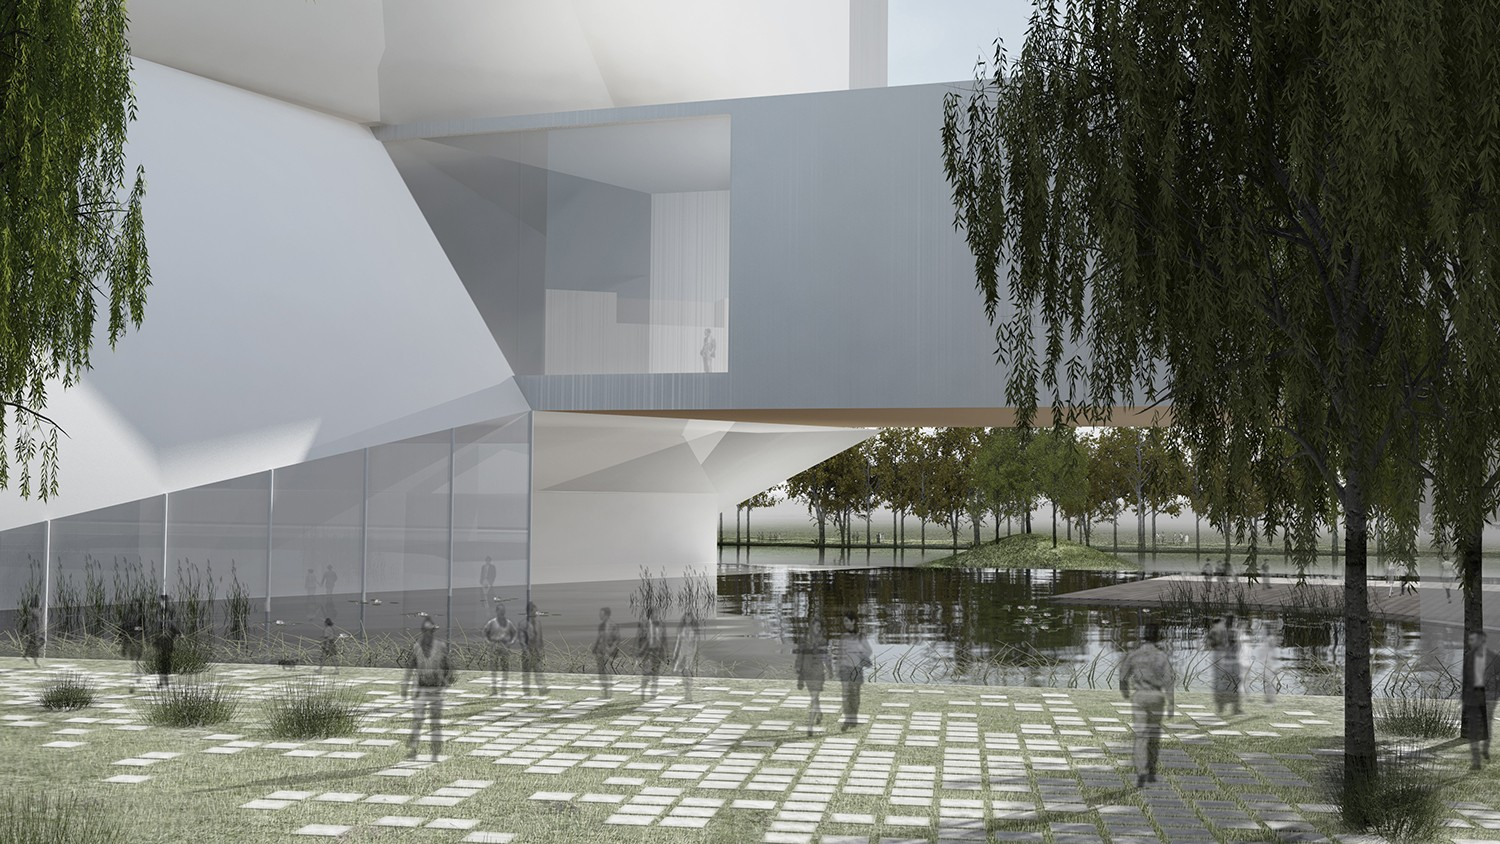 https://stevenholl.sfo2.digitaloceanspaces.com/uploads/projects/project-images/StevenHollArchitects_Qingdao_20131022_South-cube_edited_03_Final_WH.jpg